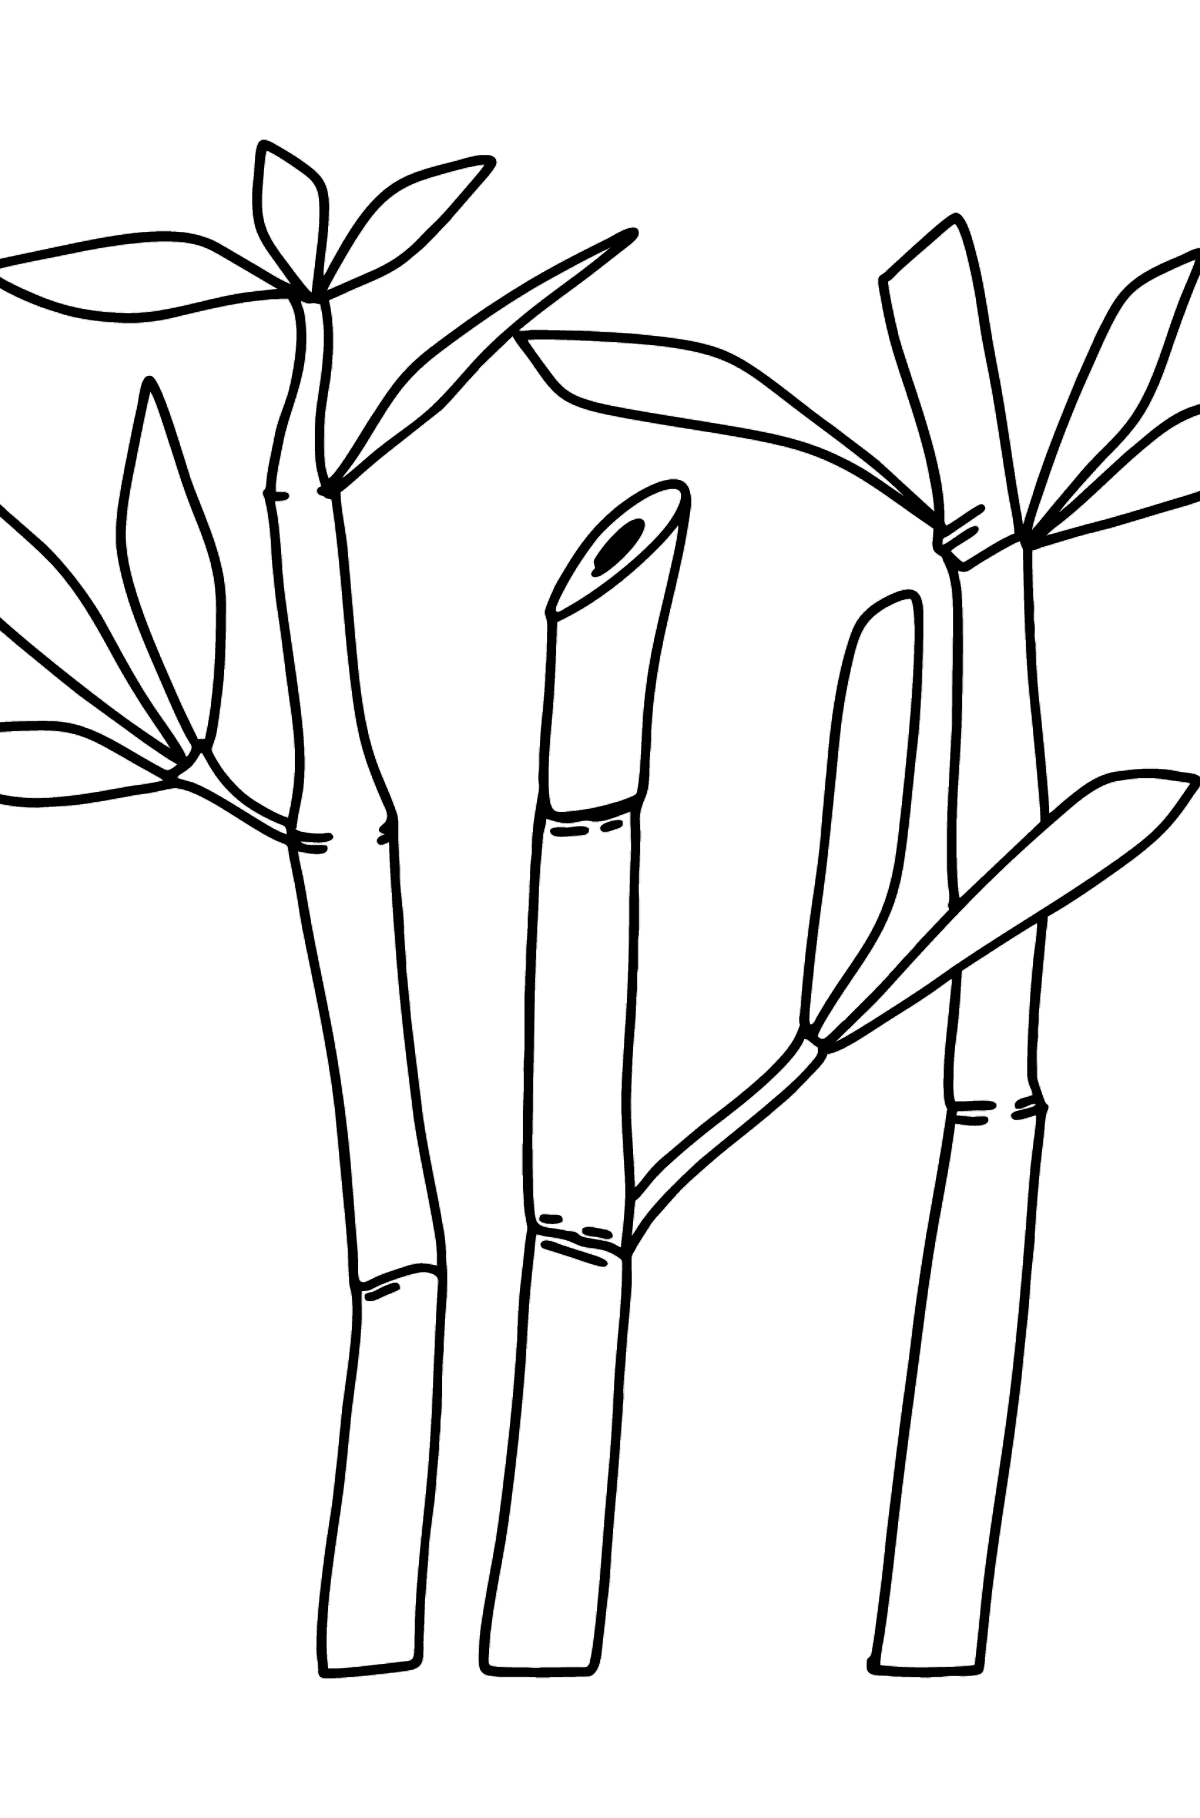 Bamboo coloring page - difficult - Coloring Pages for Kids